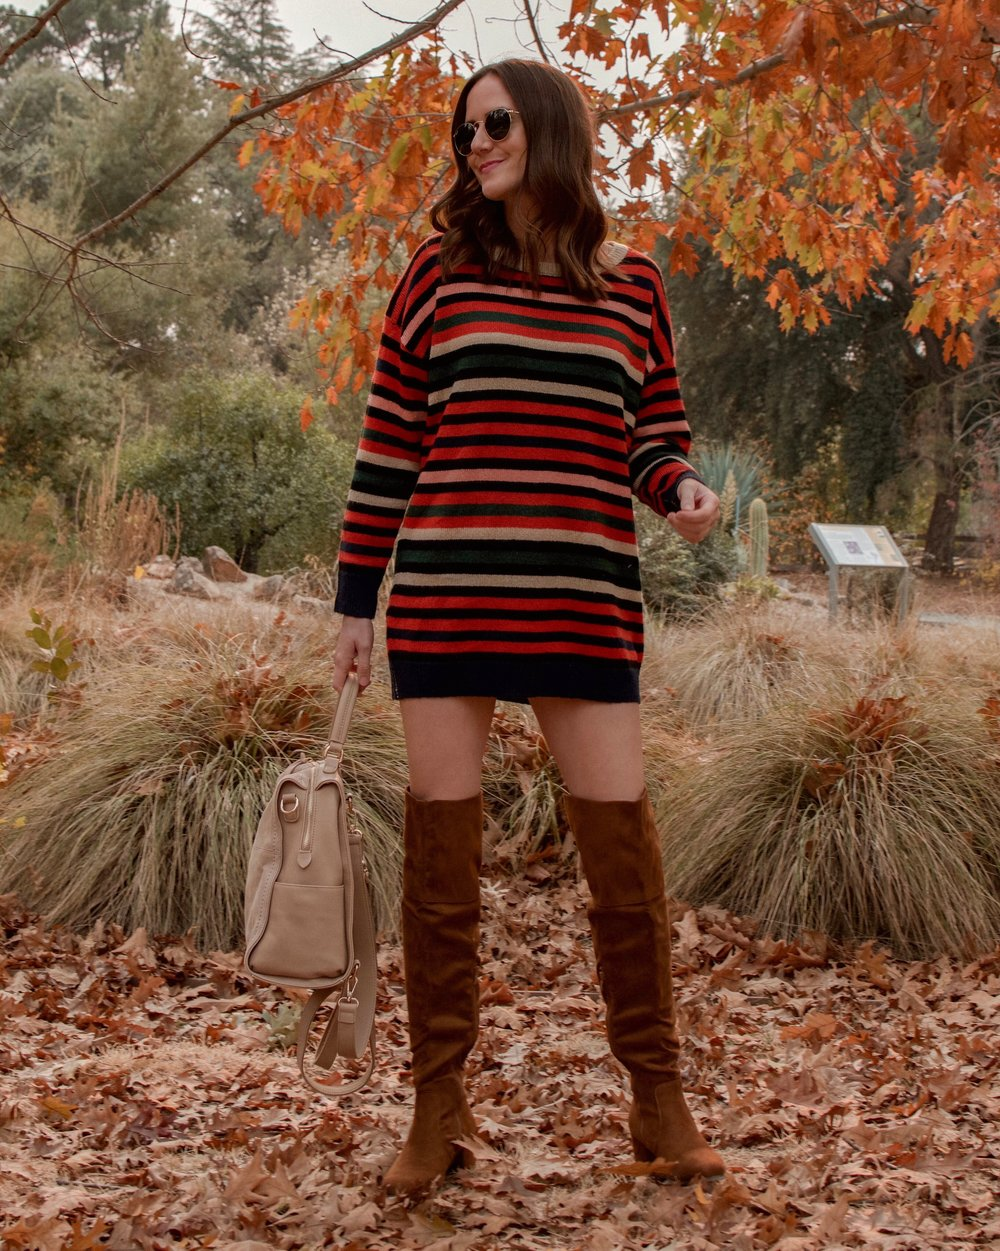 Shop the Look:  Vici Sweater Dress  c/o |  Vici Boots  c/o |  Vici Backpack  c/o |  Ray-Ban Sunglasses